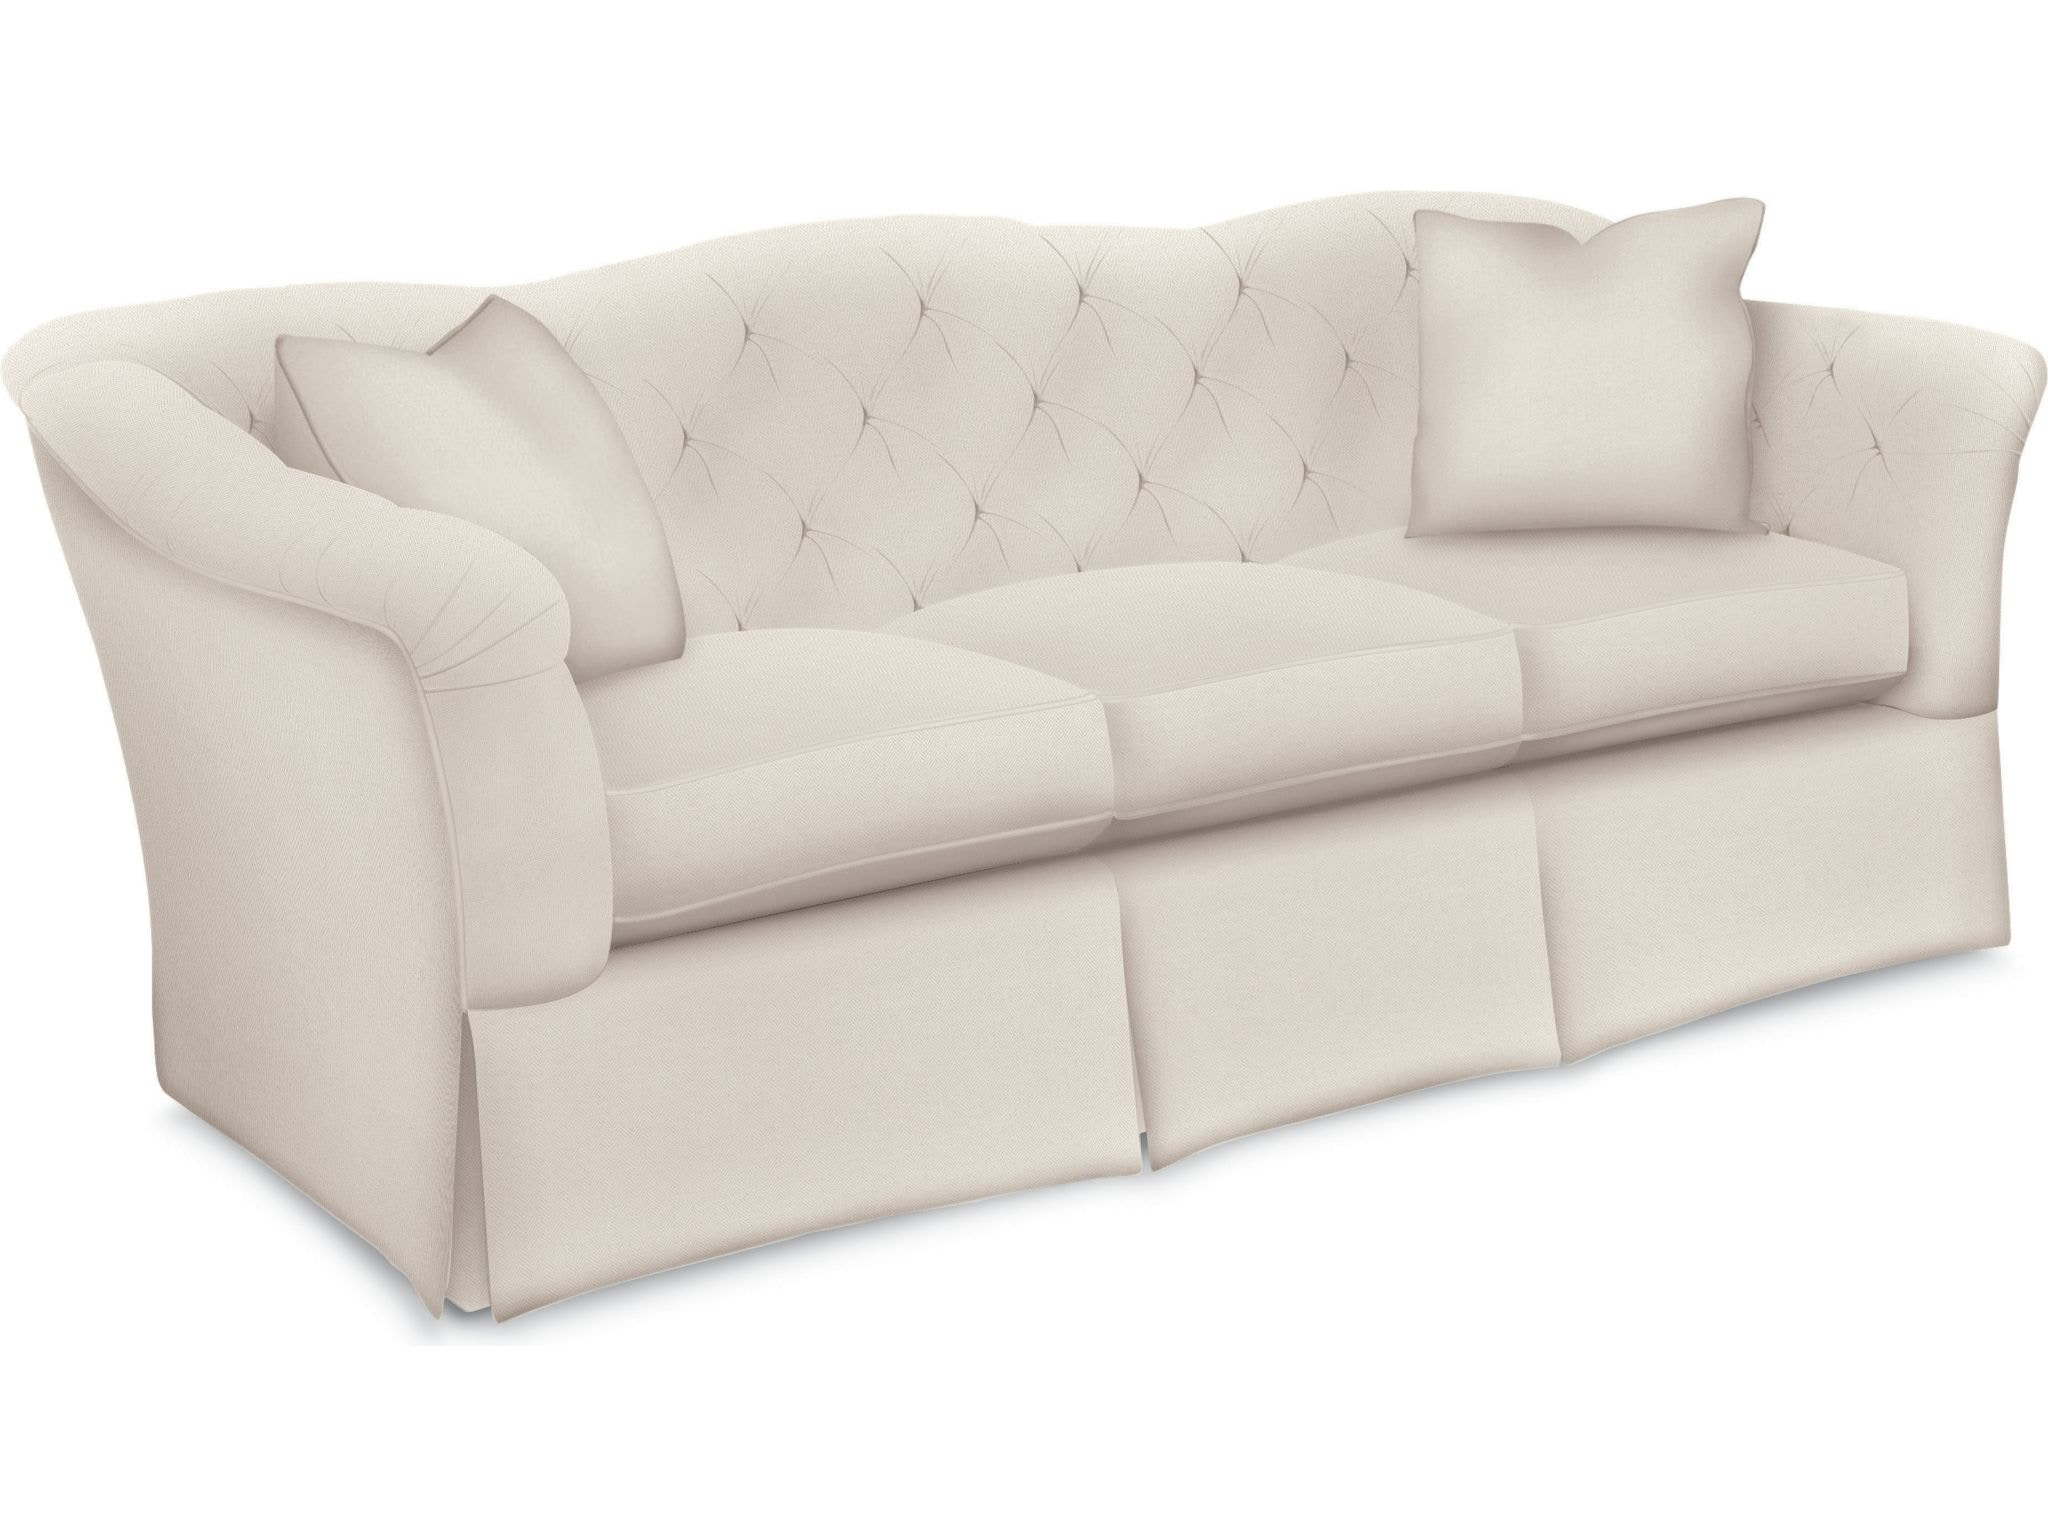 Thomasville Living Room Rendezvous Sofa 1607 11 - Ennis Fine Furniture - Boise, ID, Reno, NV ...